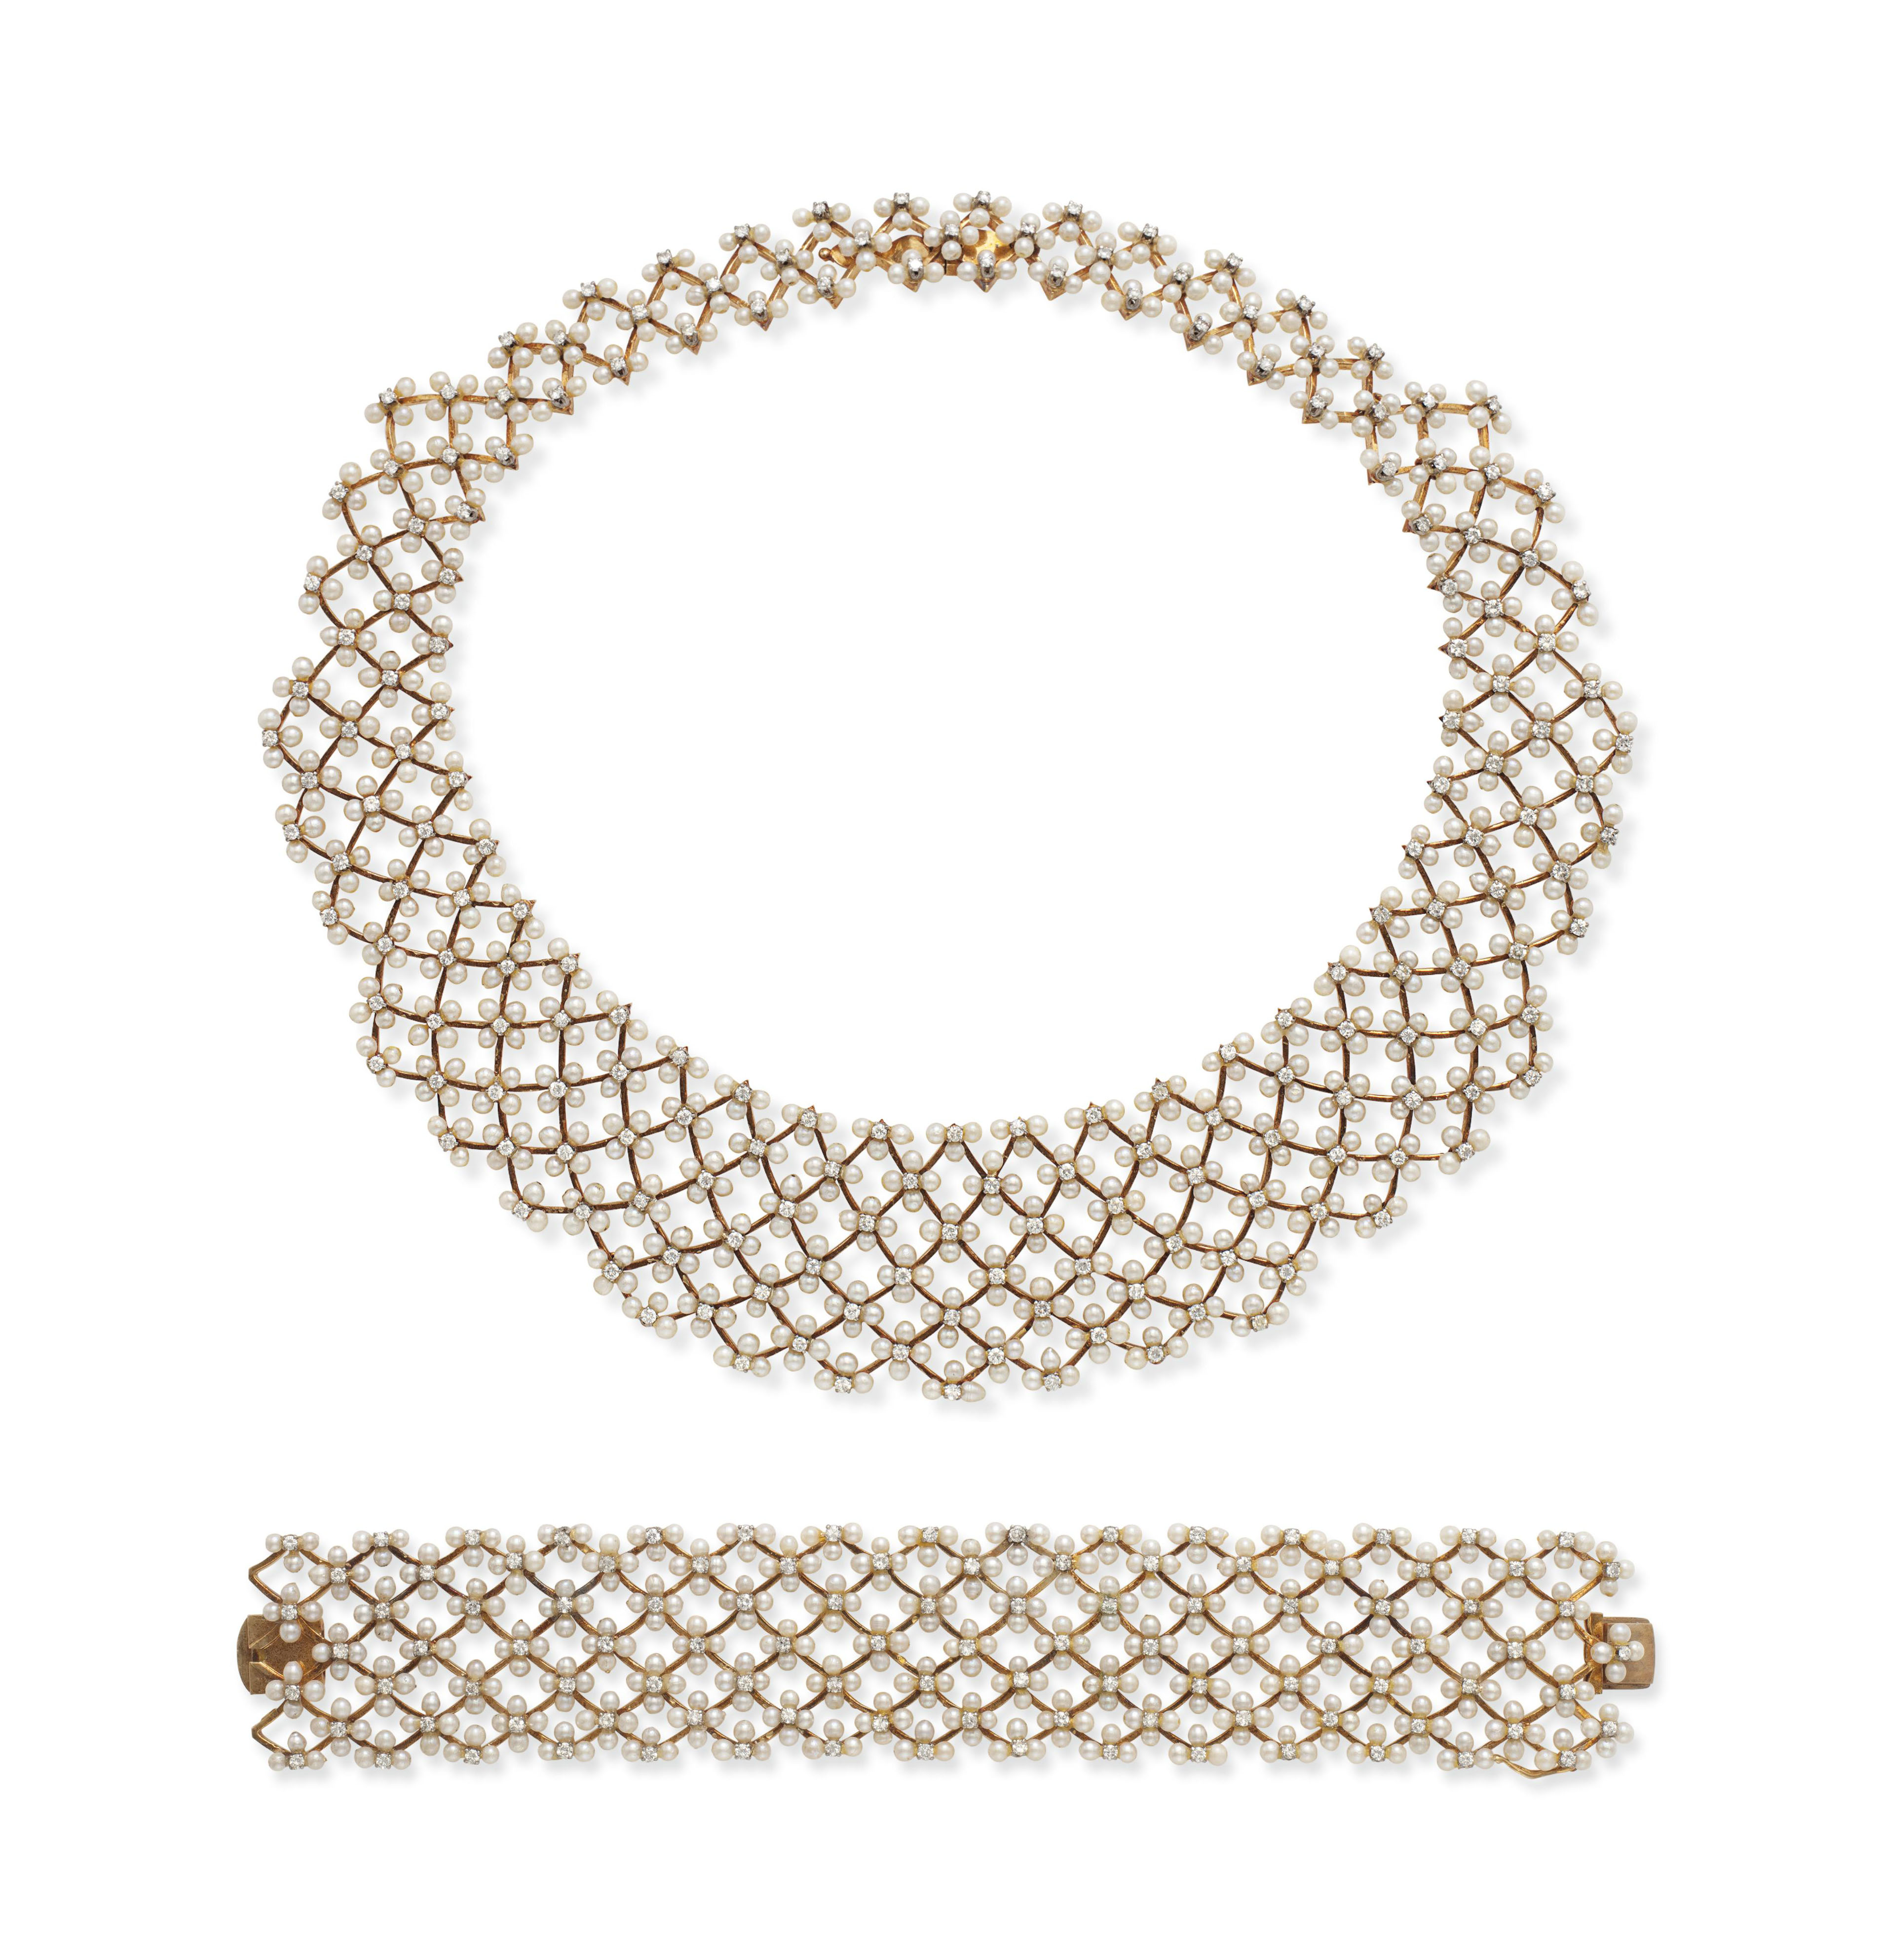 A SET OF SEED PEARL, DIAMOND AND GOLD JEWELRY, BY ILIAS LALOUNIS